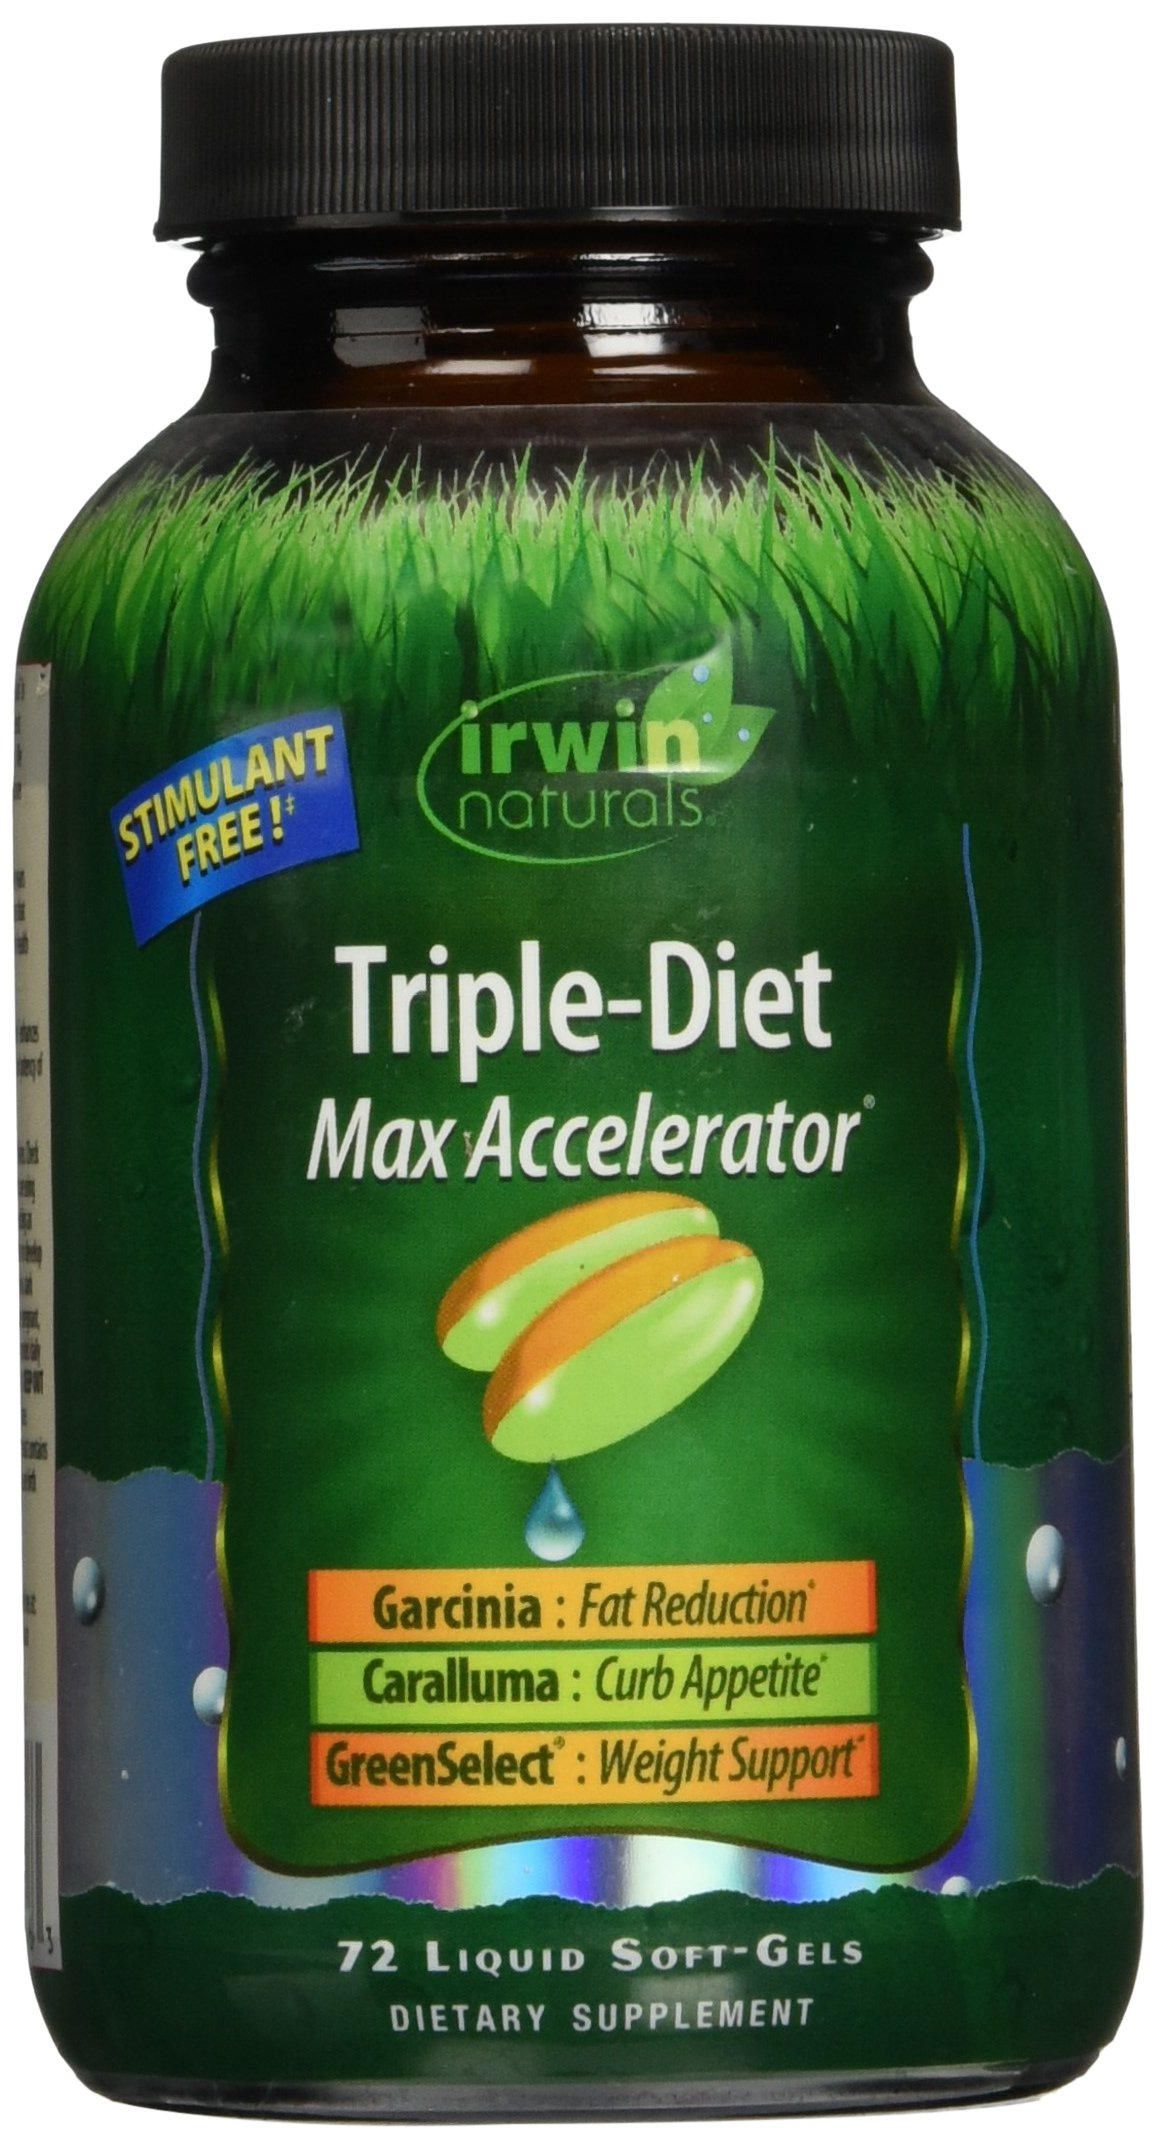 Gnc vitamins to help lose weight